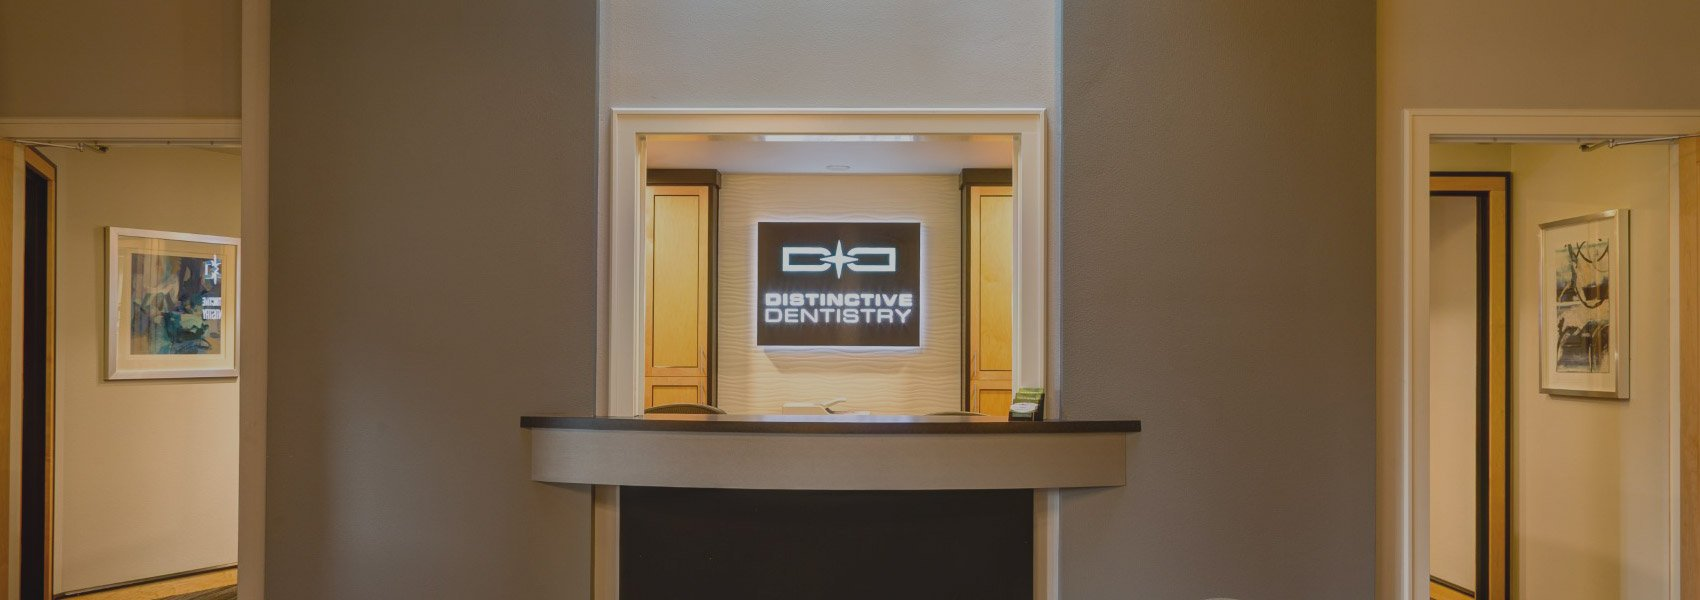 Request An Appointment - Distinctive Dentistry